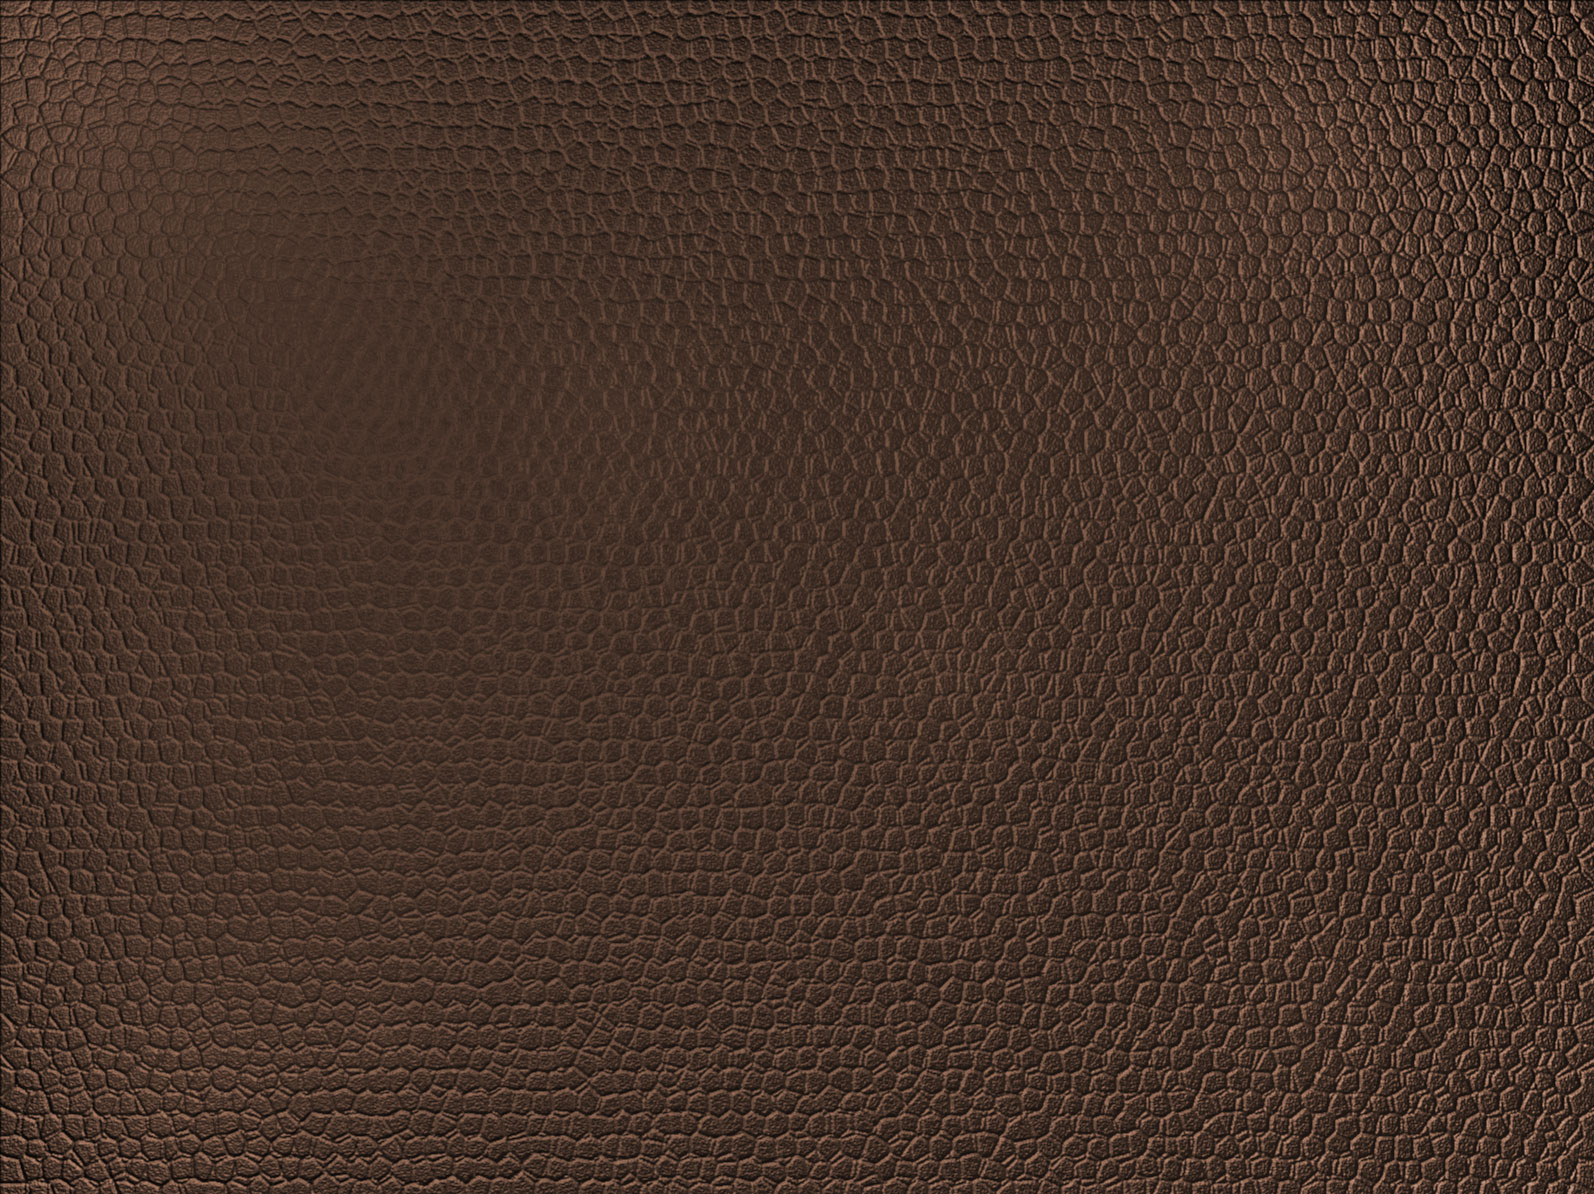 Vintage Car Wallpaper Border Quick Tip Create Your Own Leather Texture Using Filters